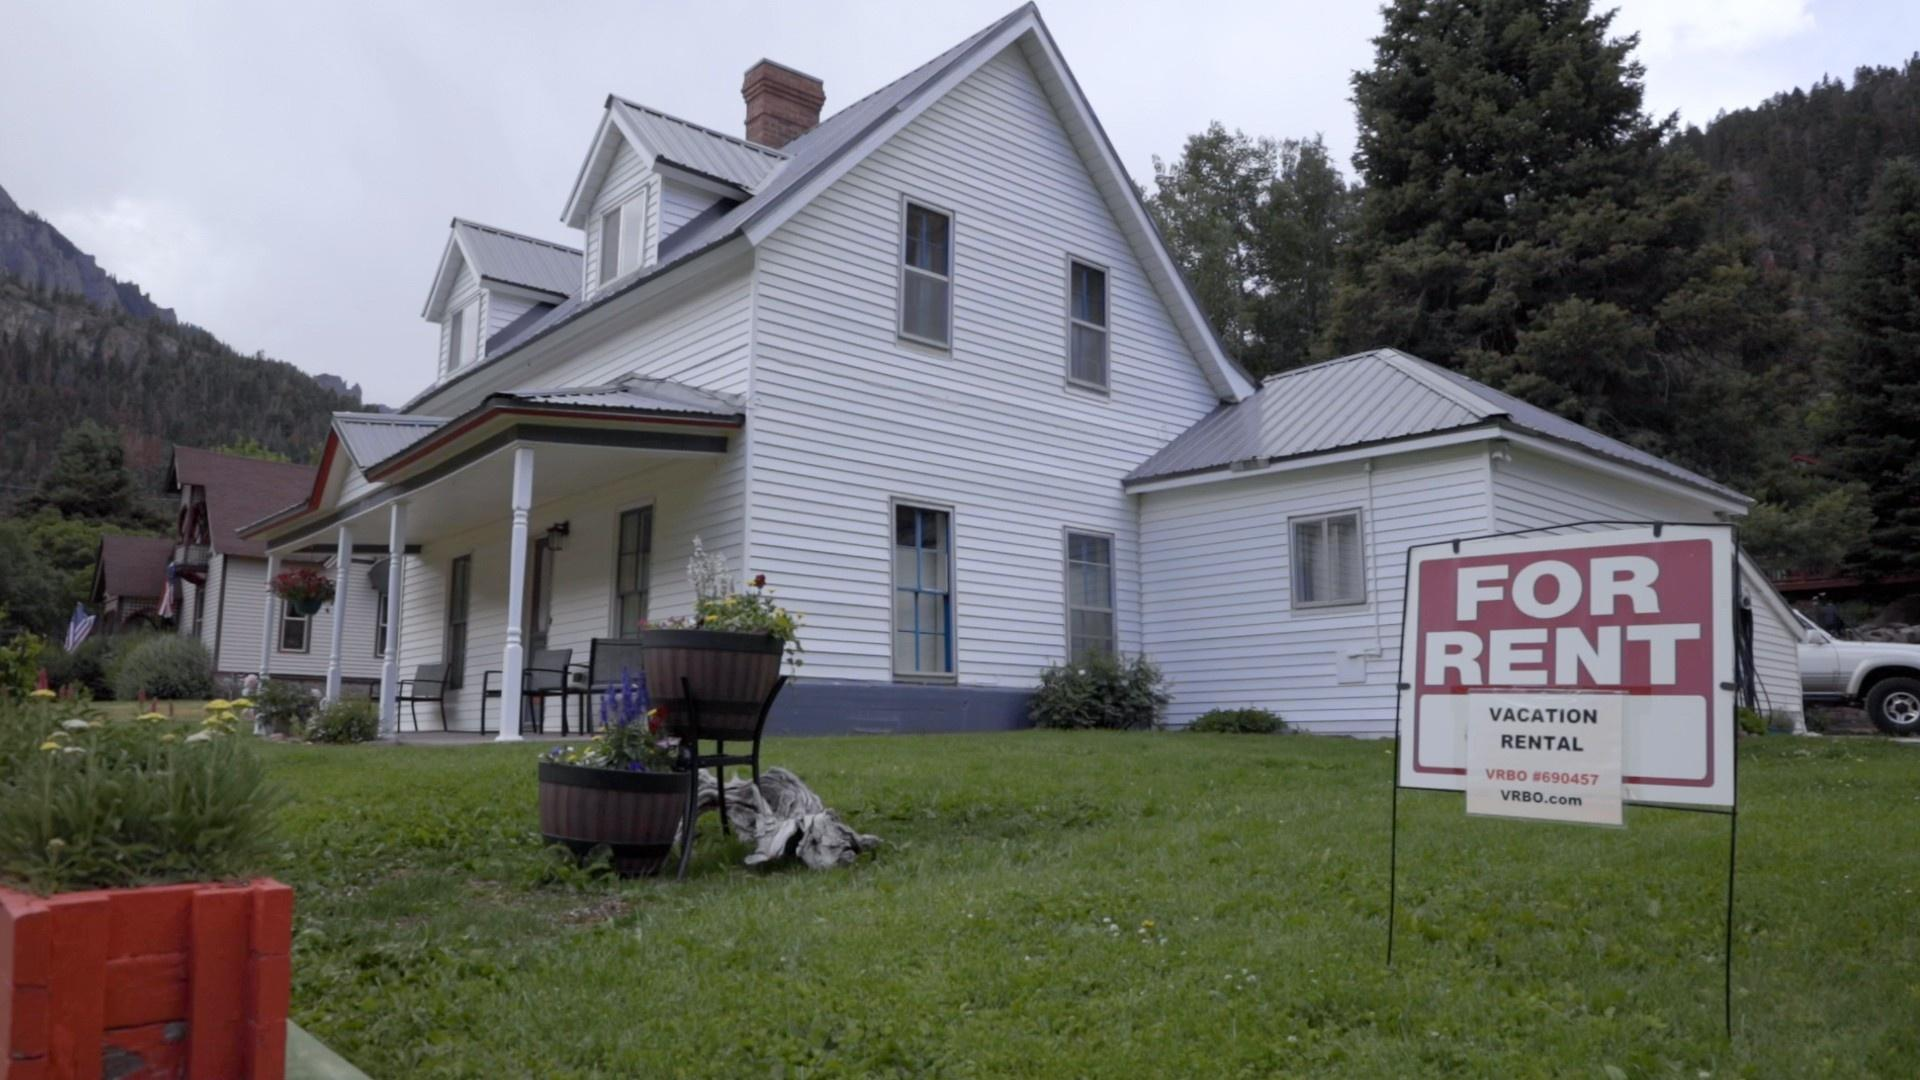 Vacation homes have eaten up a huge portion of the town's housing, pushing out the locals who can no longer afford to live there.